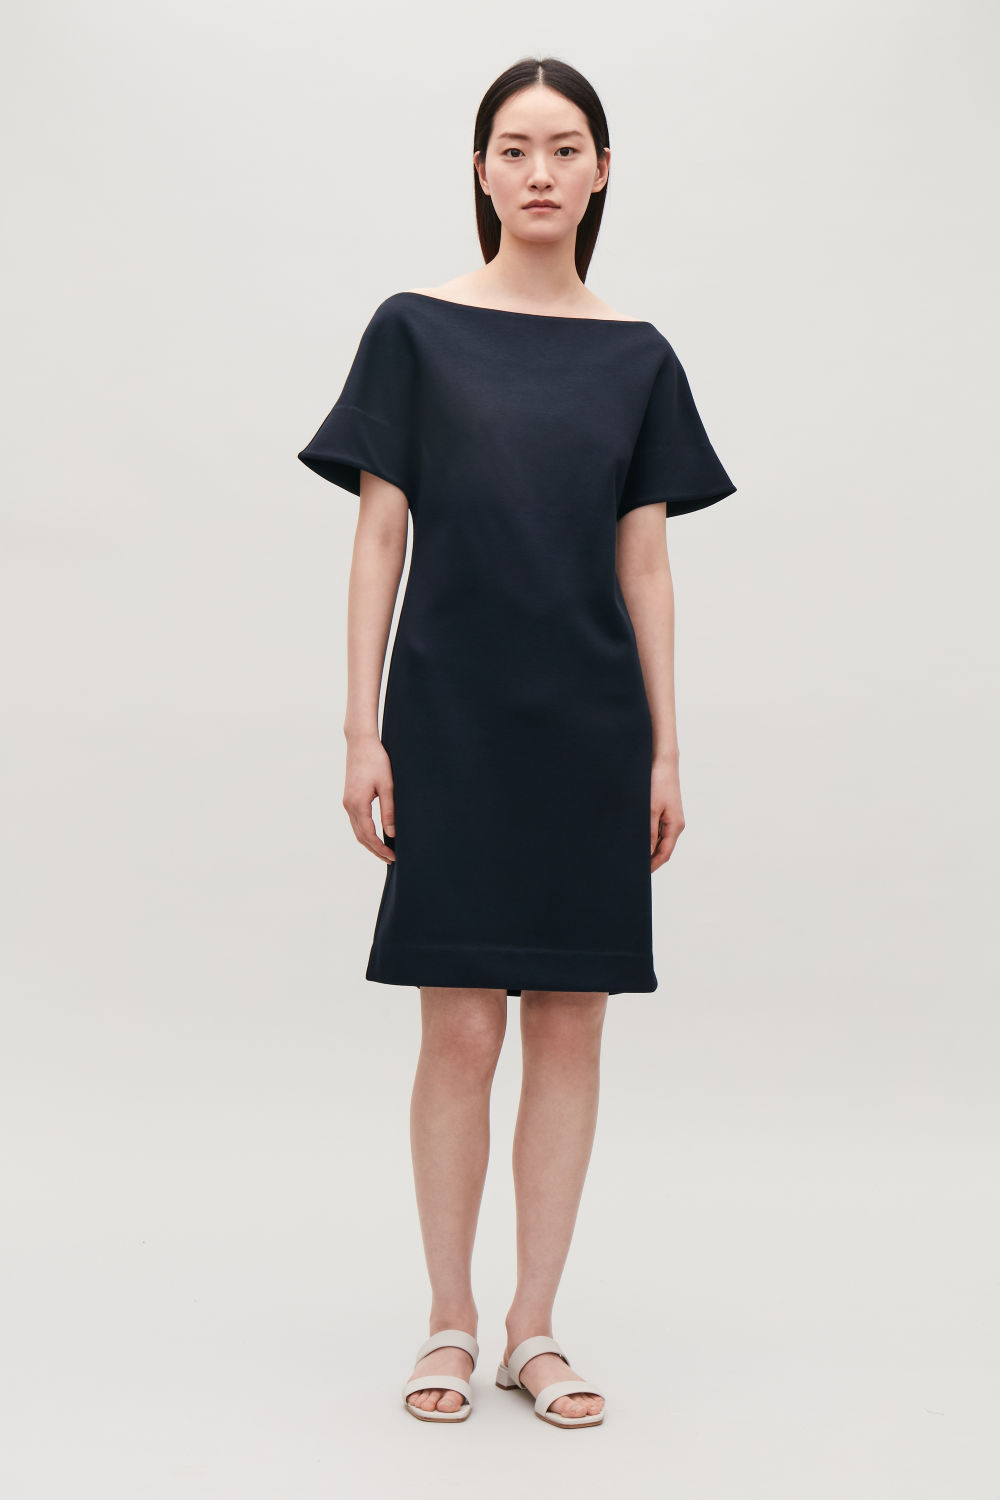 COS JERSEY DRESS WITH SMOCKING,Navy